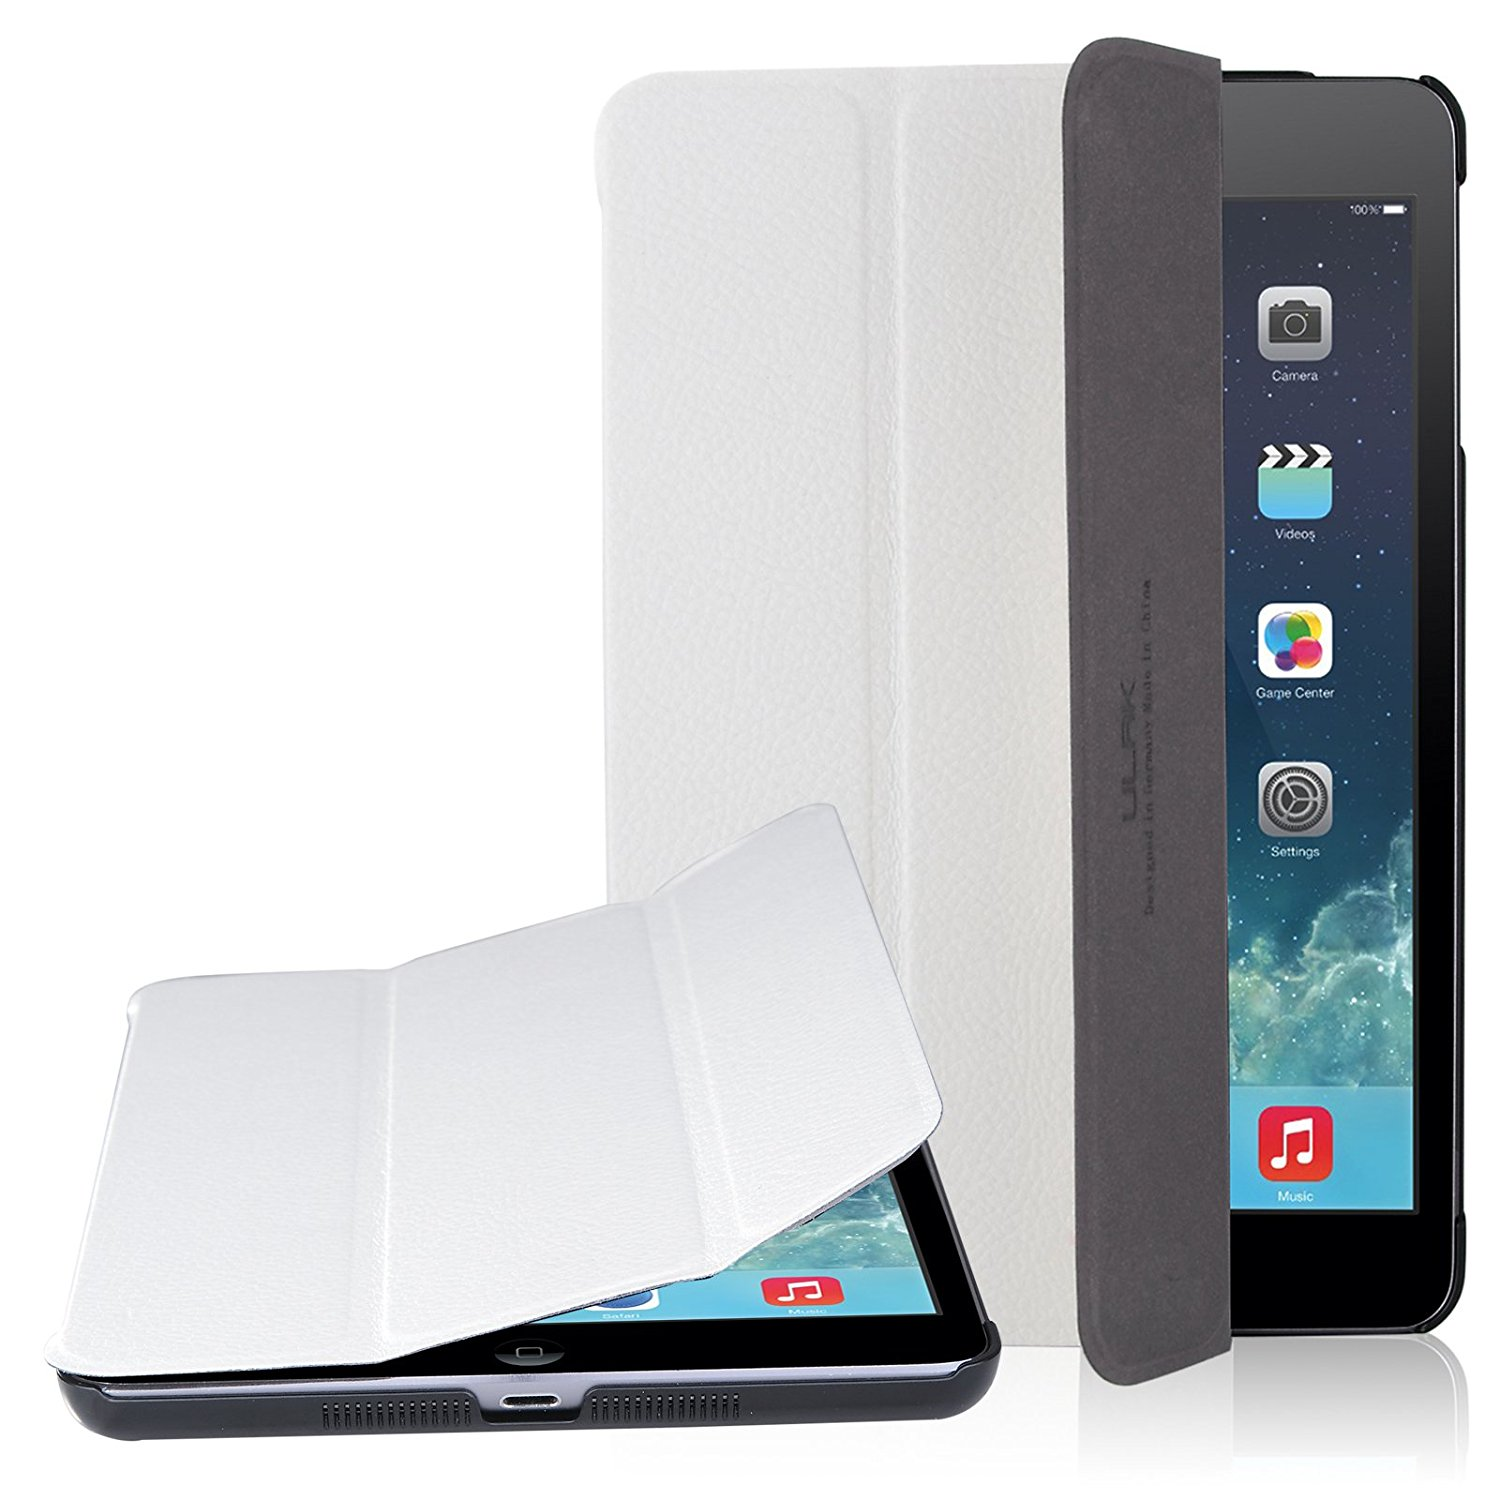 iPad Mini 3 Case,iPad Mini 2 Case,iPad Mini Case,ULAK iPad Mini Case Flip Case with Synthetic Leather Case + Fold Media Stand for Apple iPad Mini 3 2 1 (7.9 inch) White